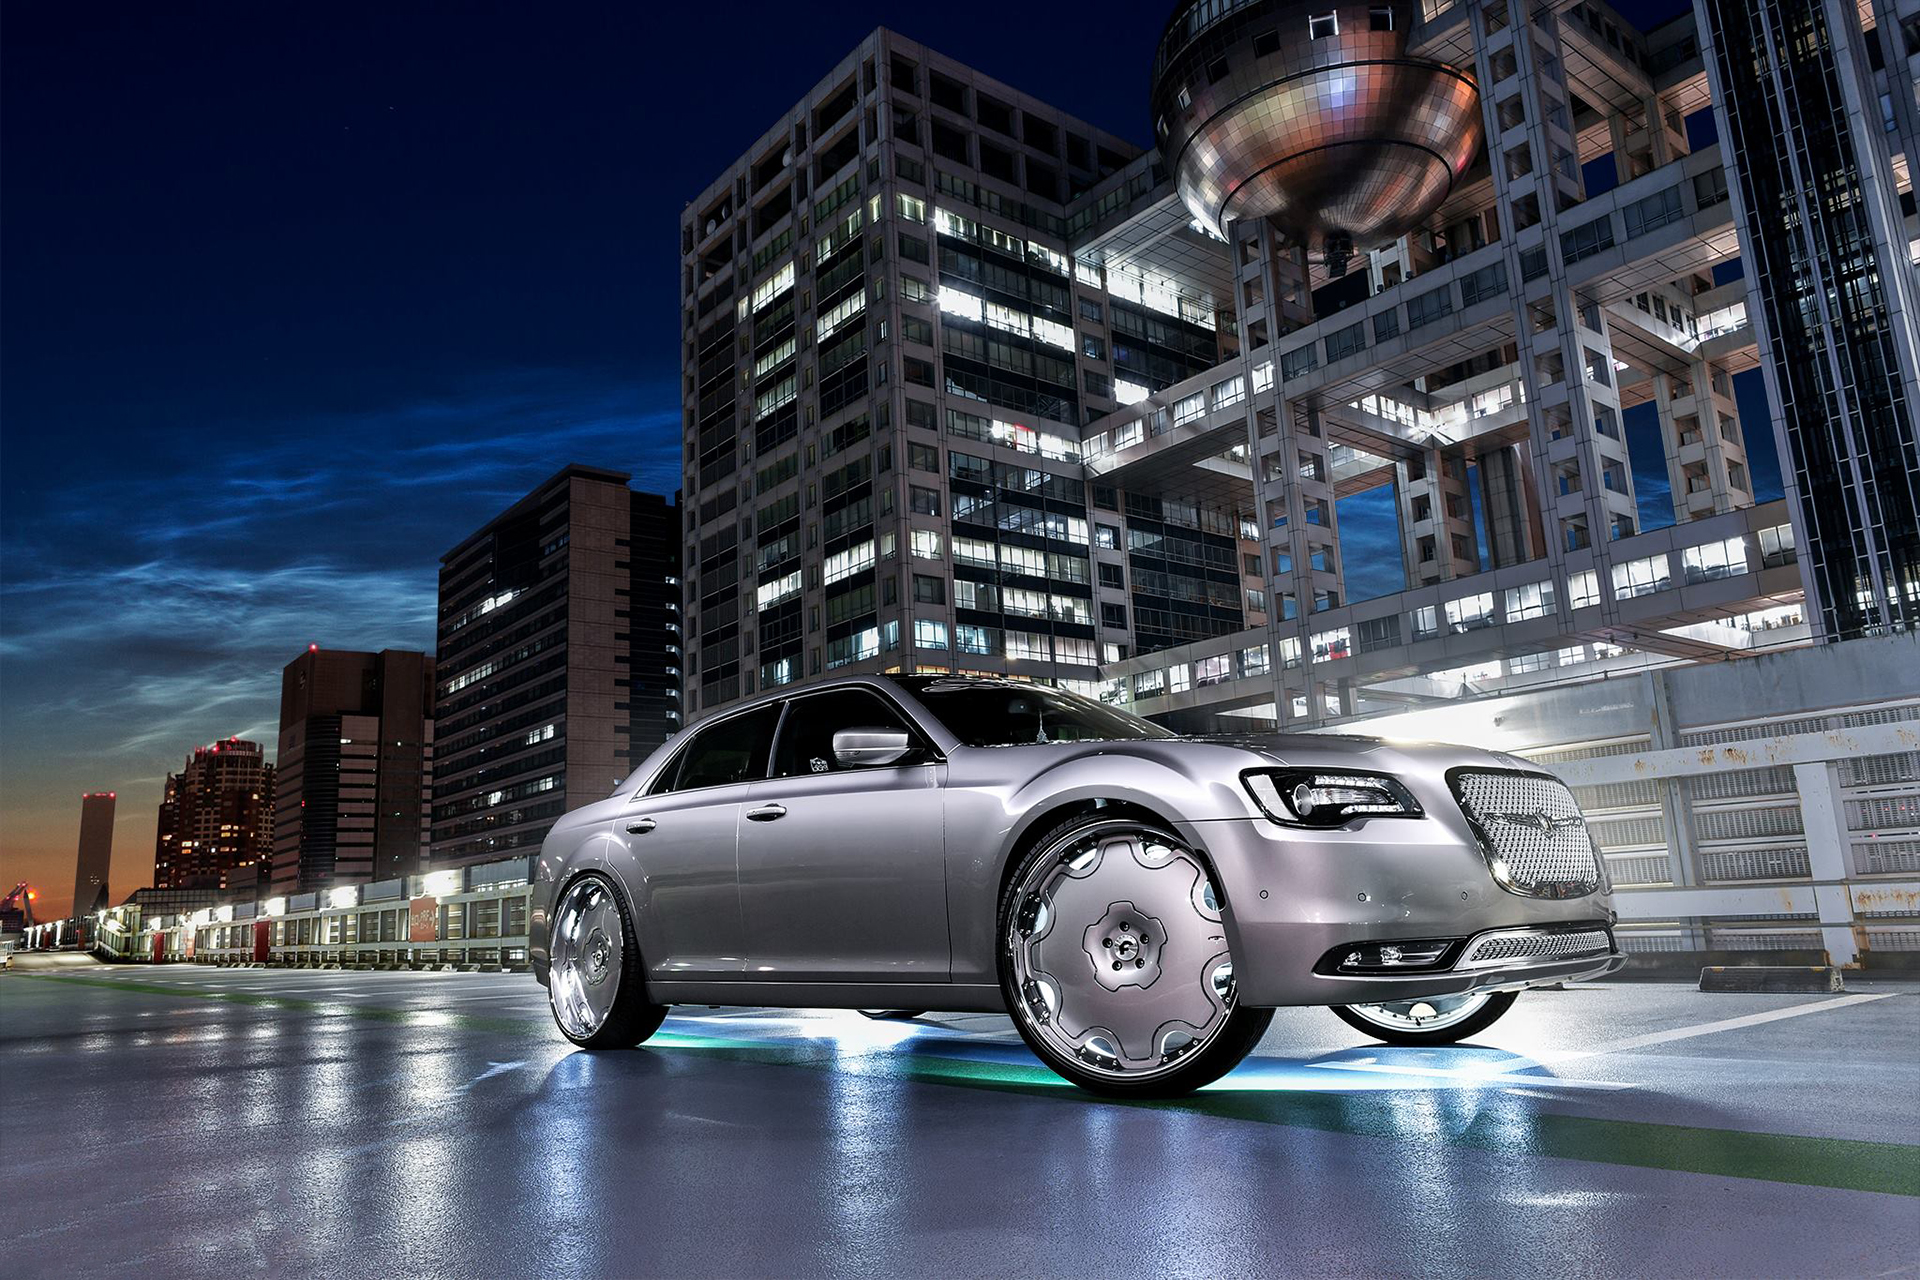 A Japanese owner of a Chrysler 300C wanted to spice up the appearance of his big sedan/saloon car